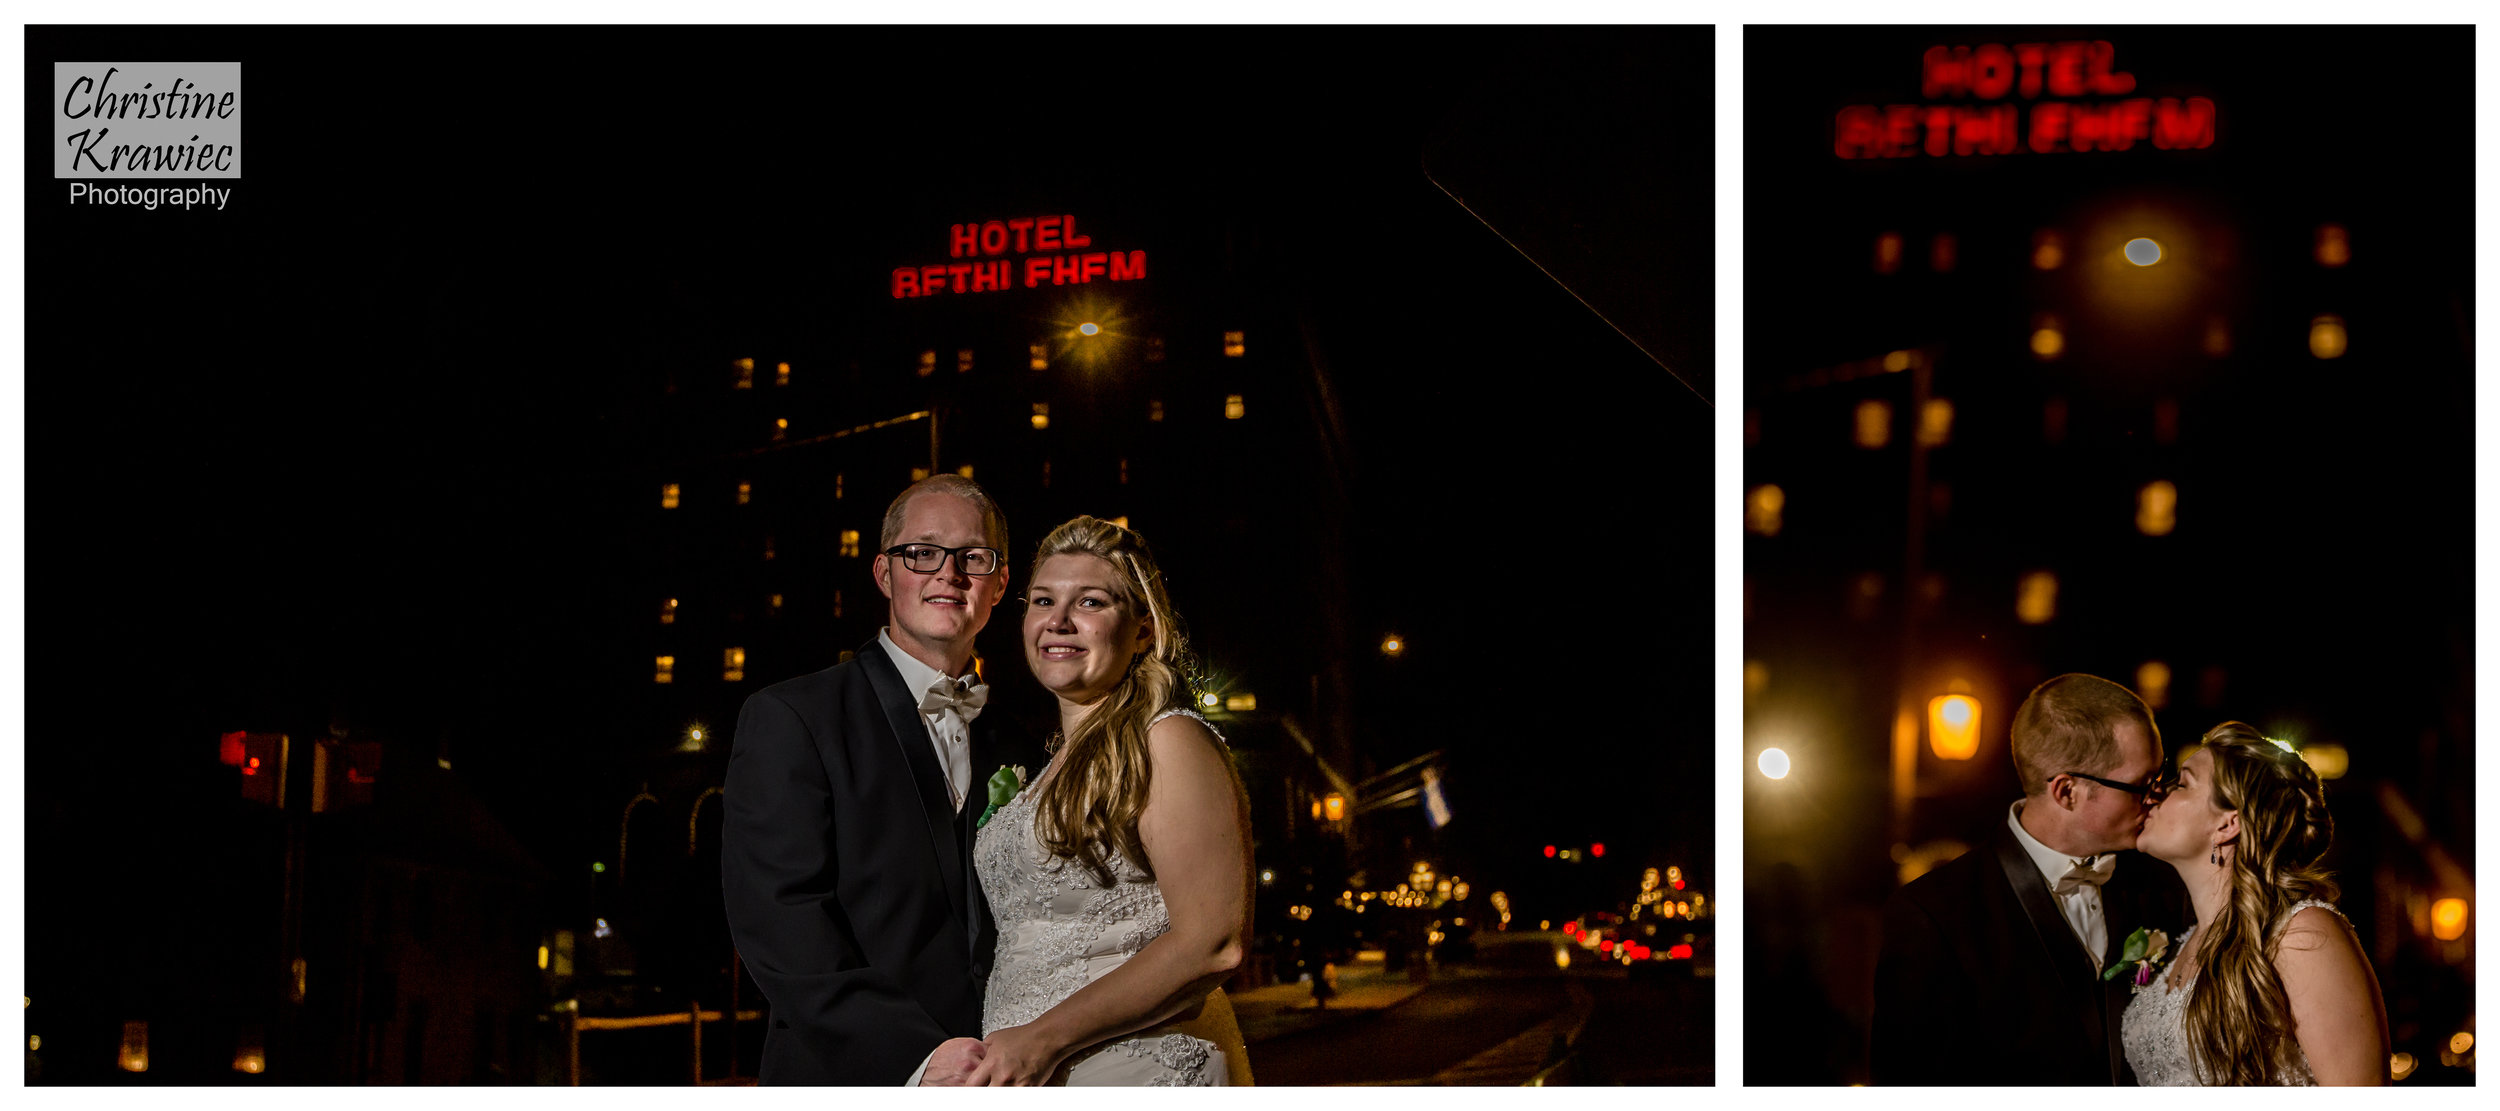 The Hotel Bethlehem sign served as a fabulous backdrop to close out the night